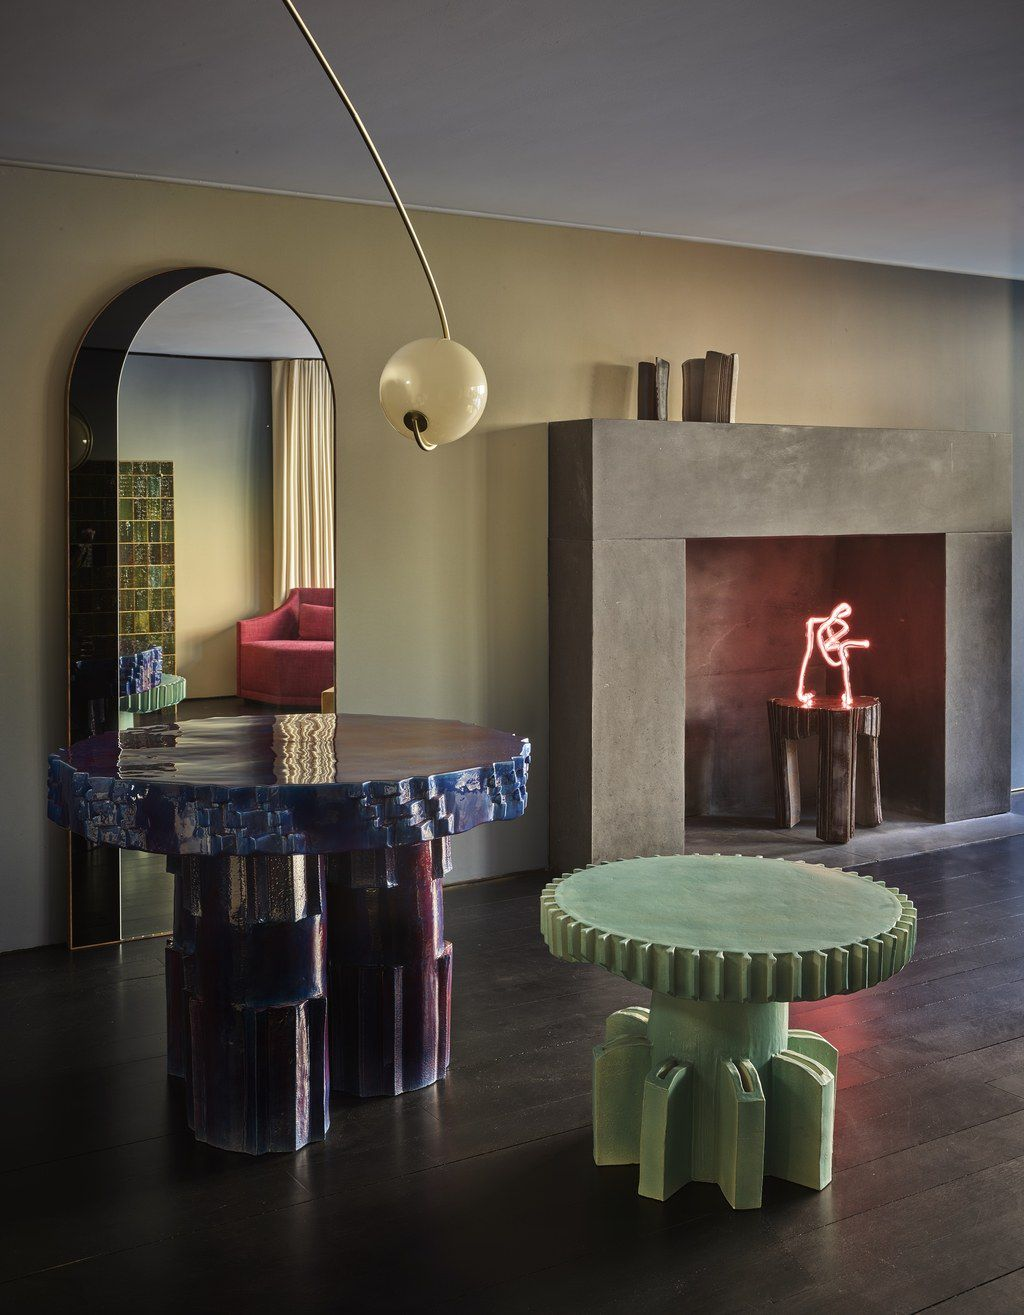 A living area with tables, a fireplace, a neon light fixture, a mirror, and a hanging lamp.